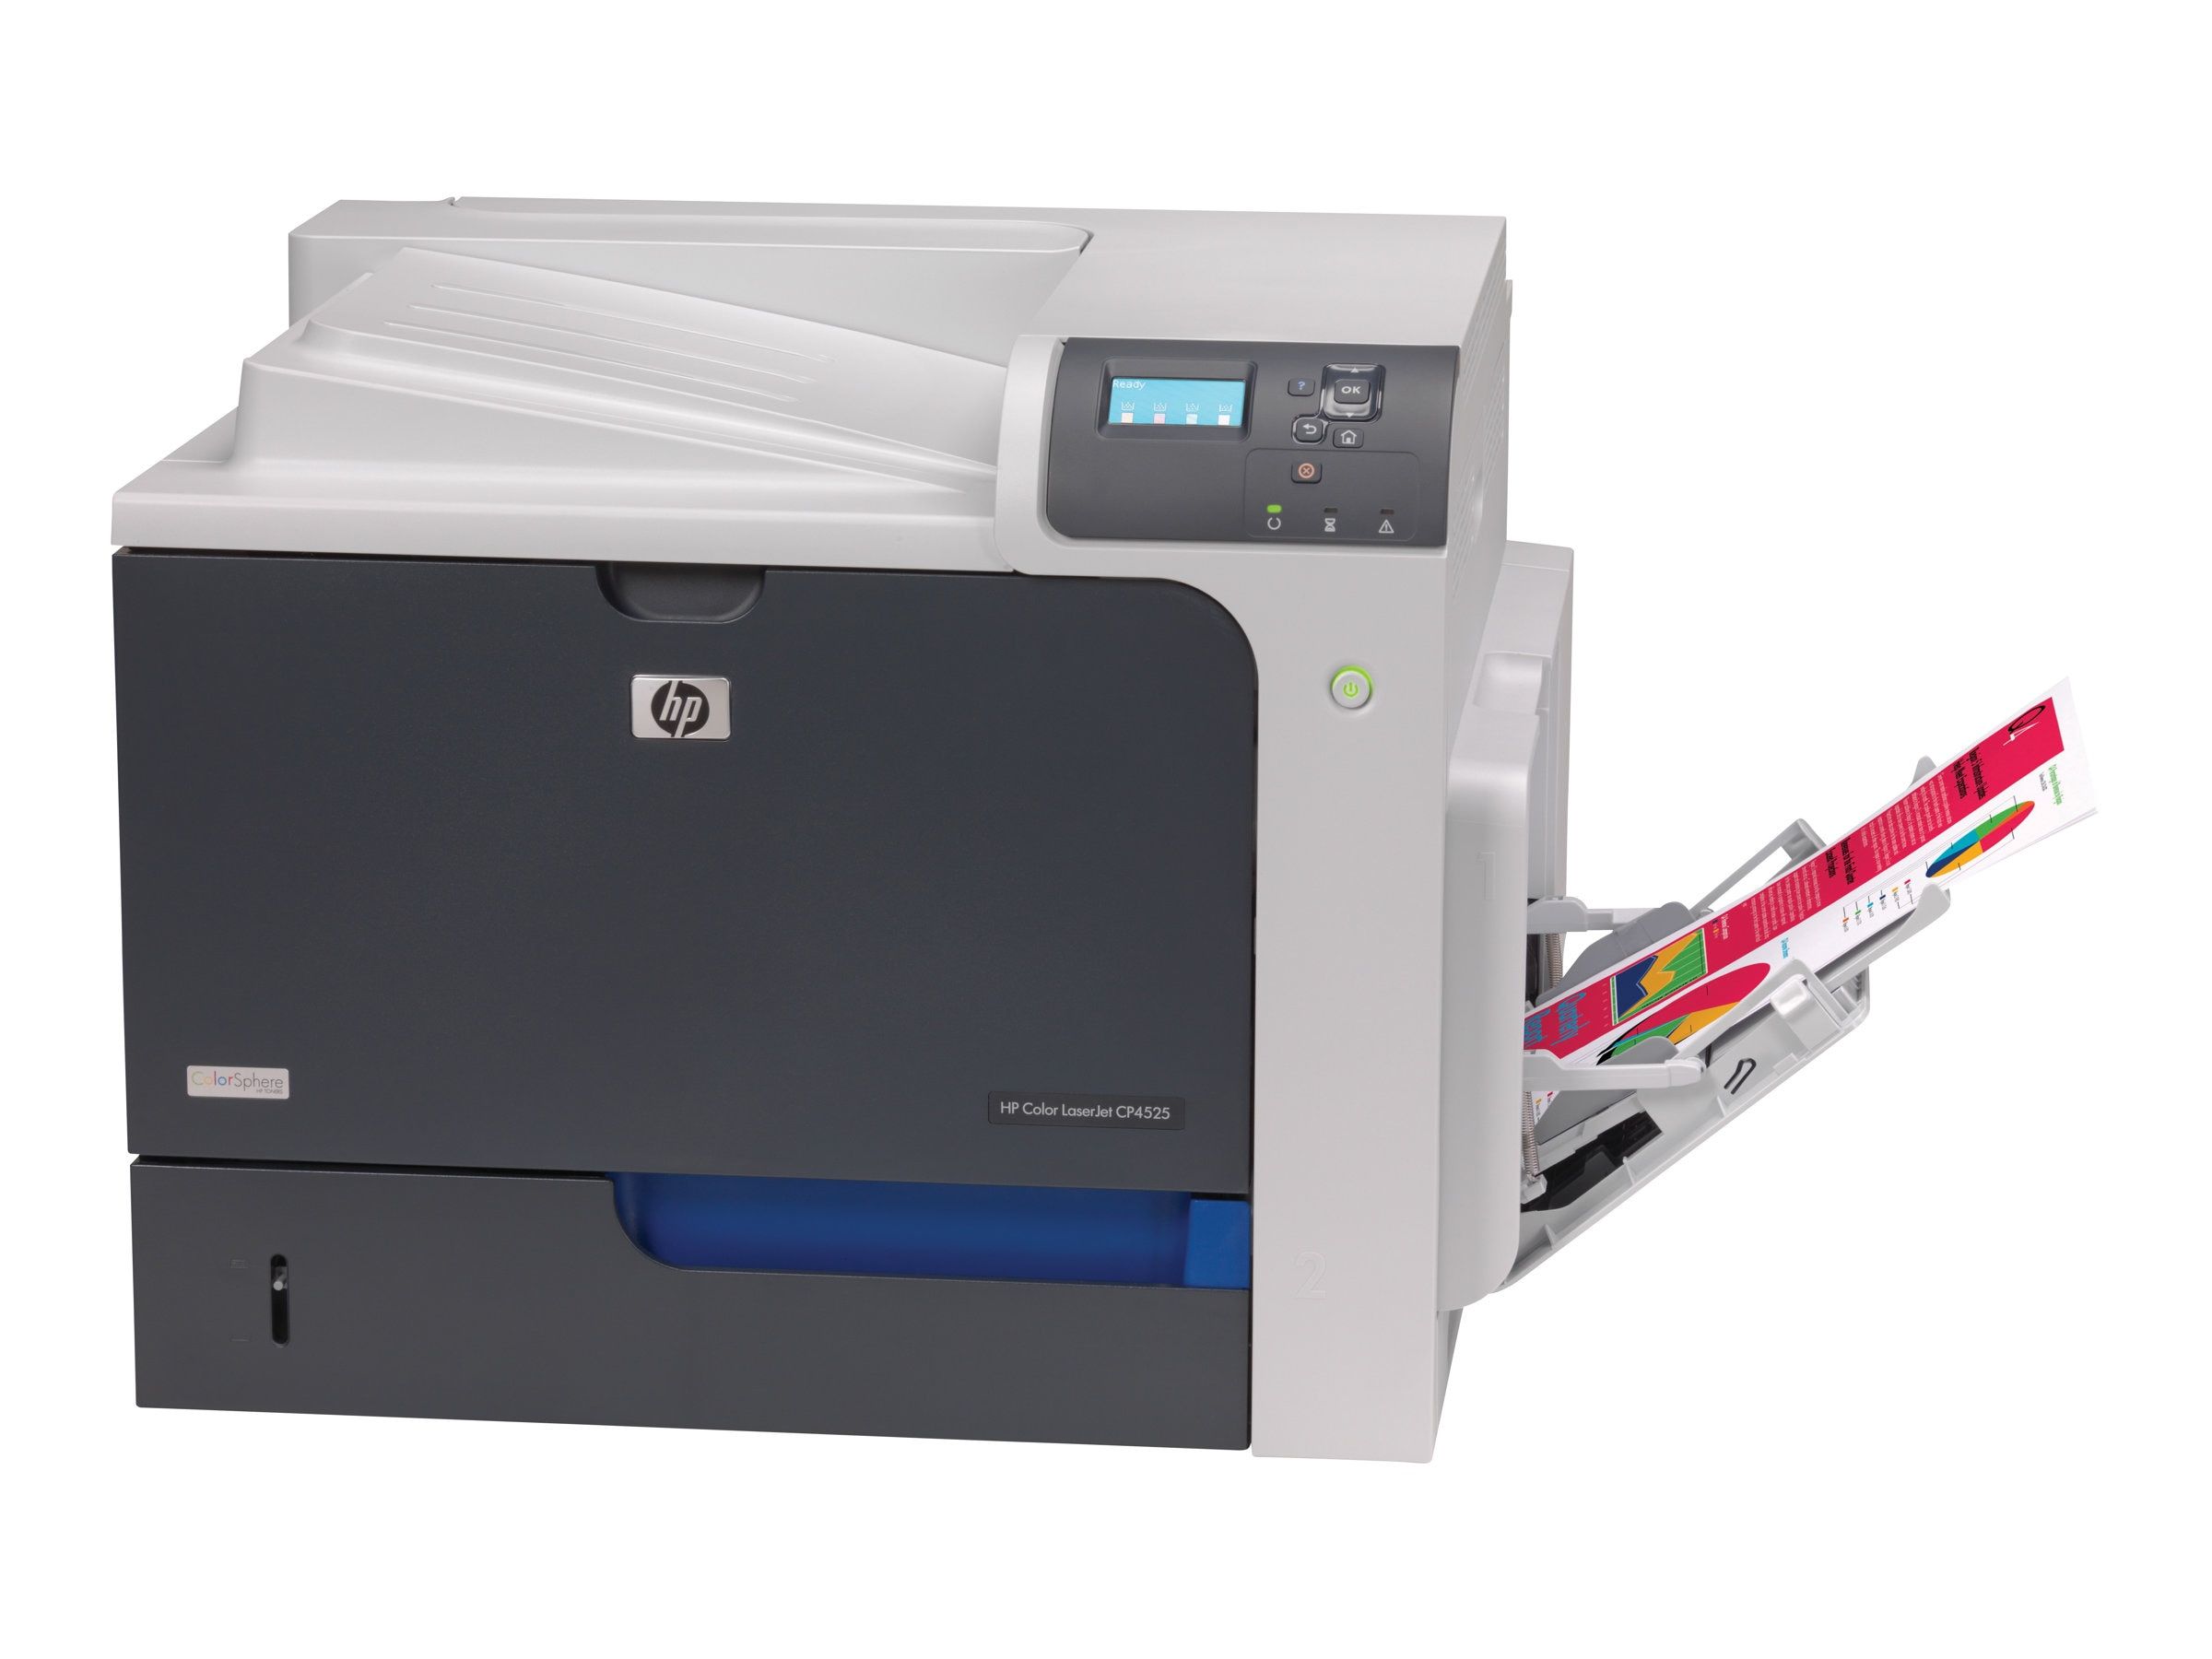 HP Color LaserJet CP4025n Printer (VPA)